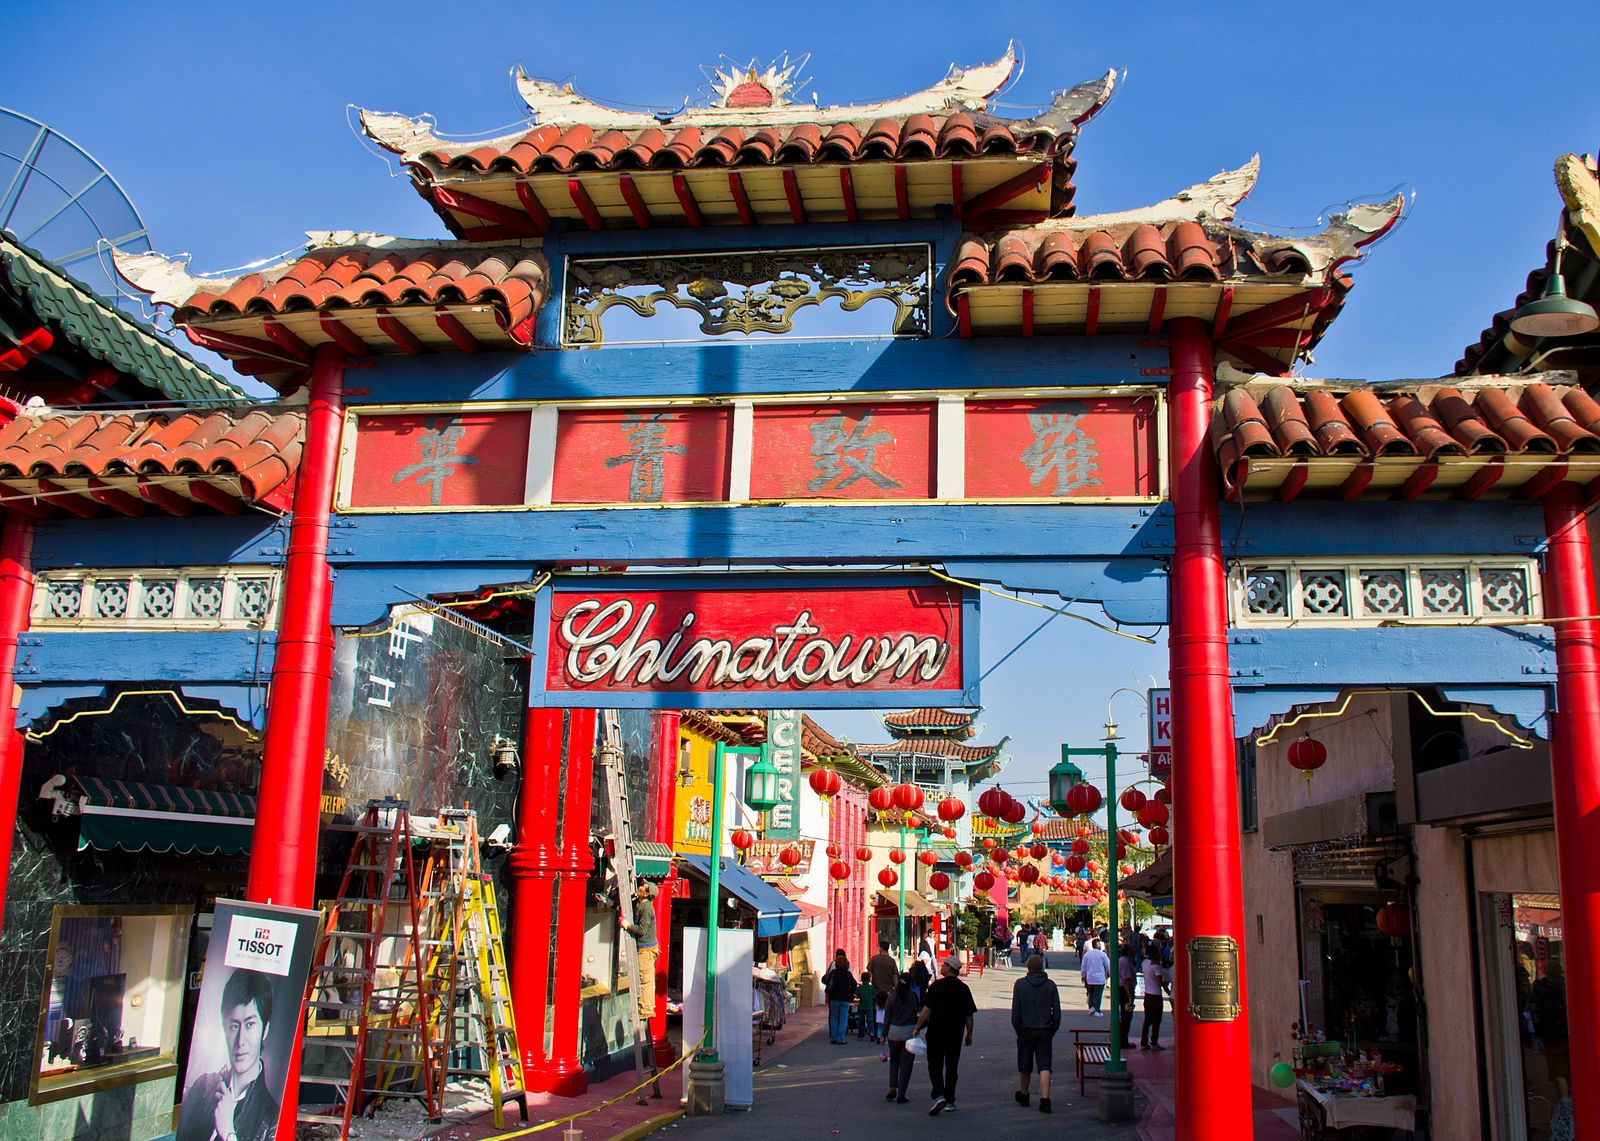 Chinatown Is Located About Two Blocks From Union Station In Downtown Los Angeles Chinatown S 16 Square B Chinatown Los Angeles Chinatown Los Angeles San Diego